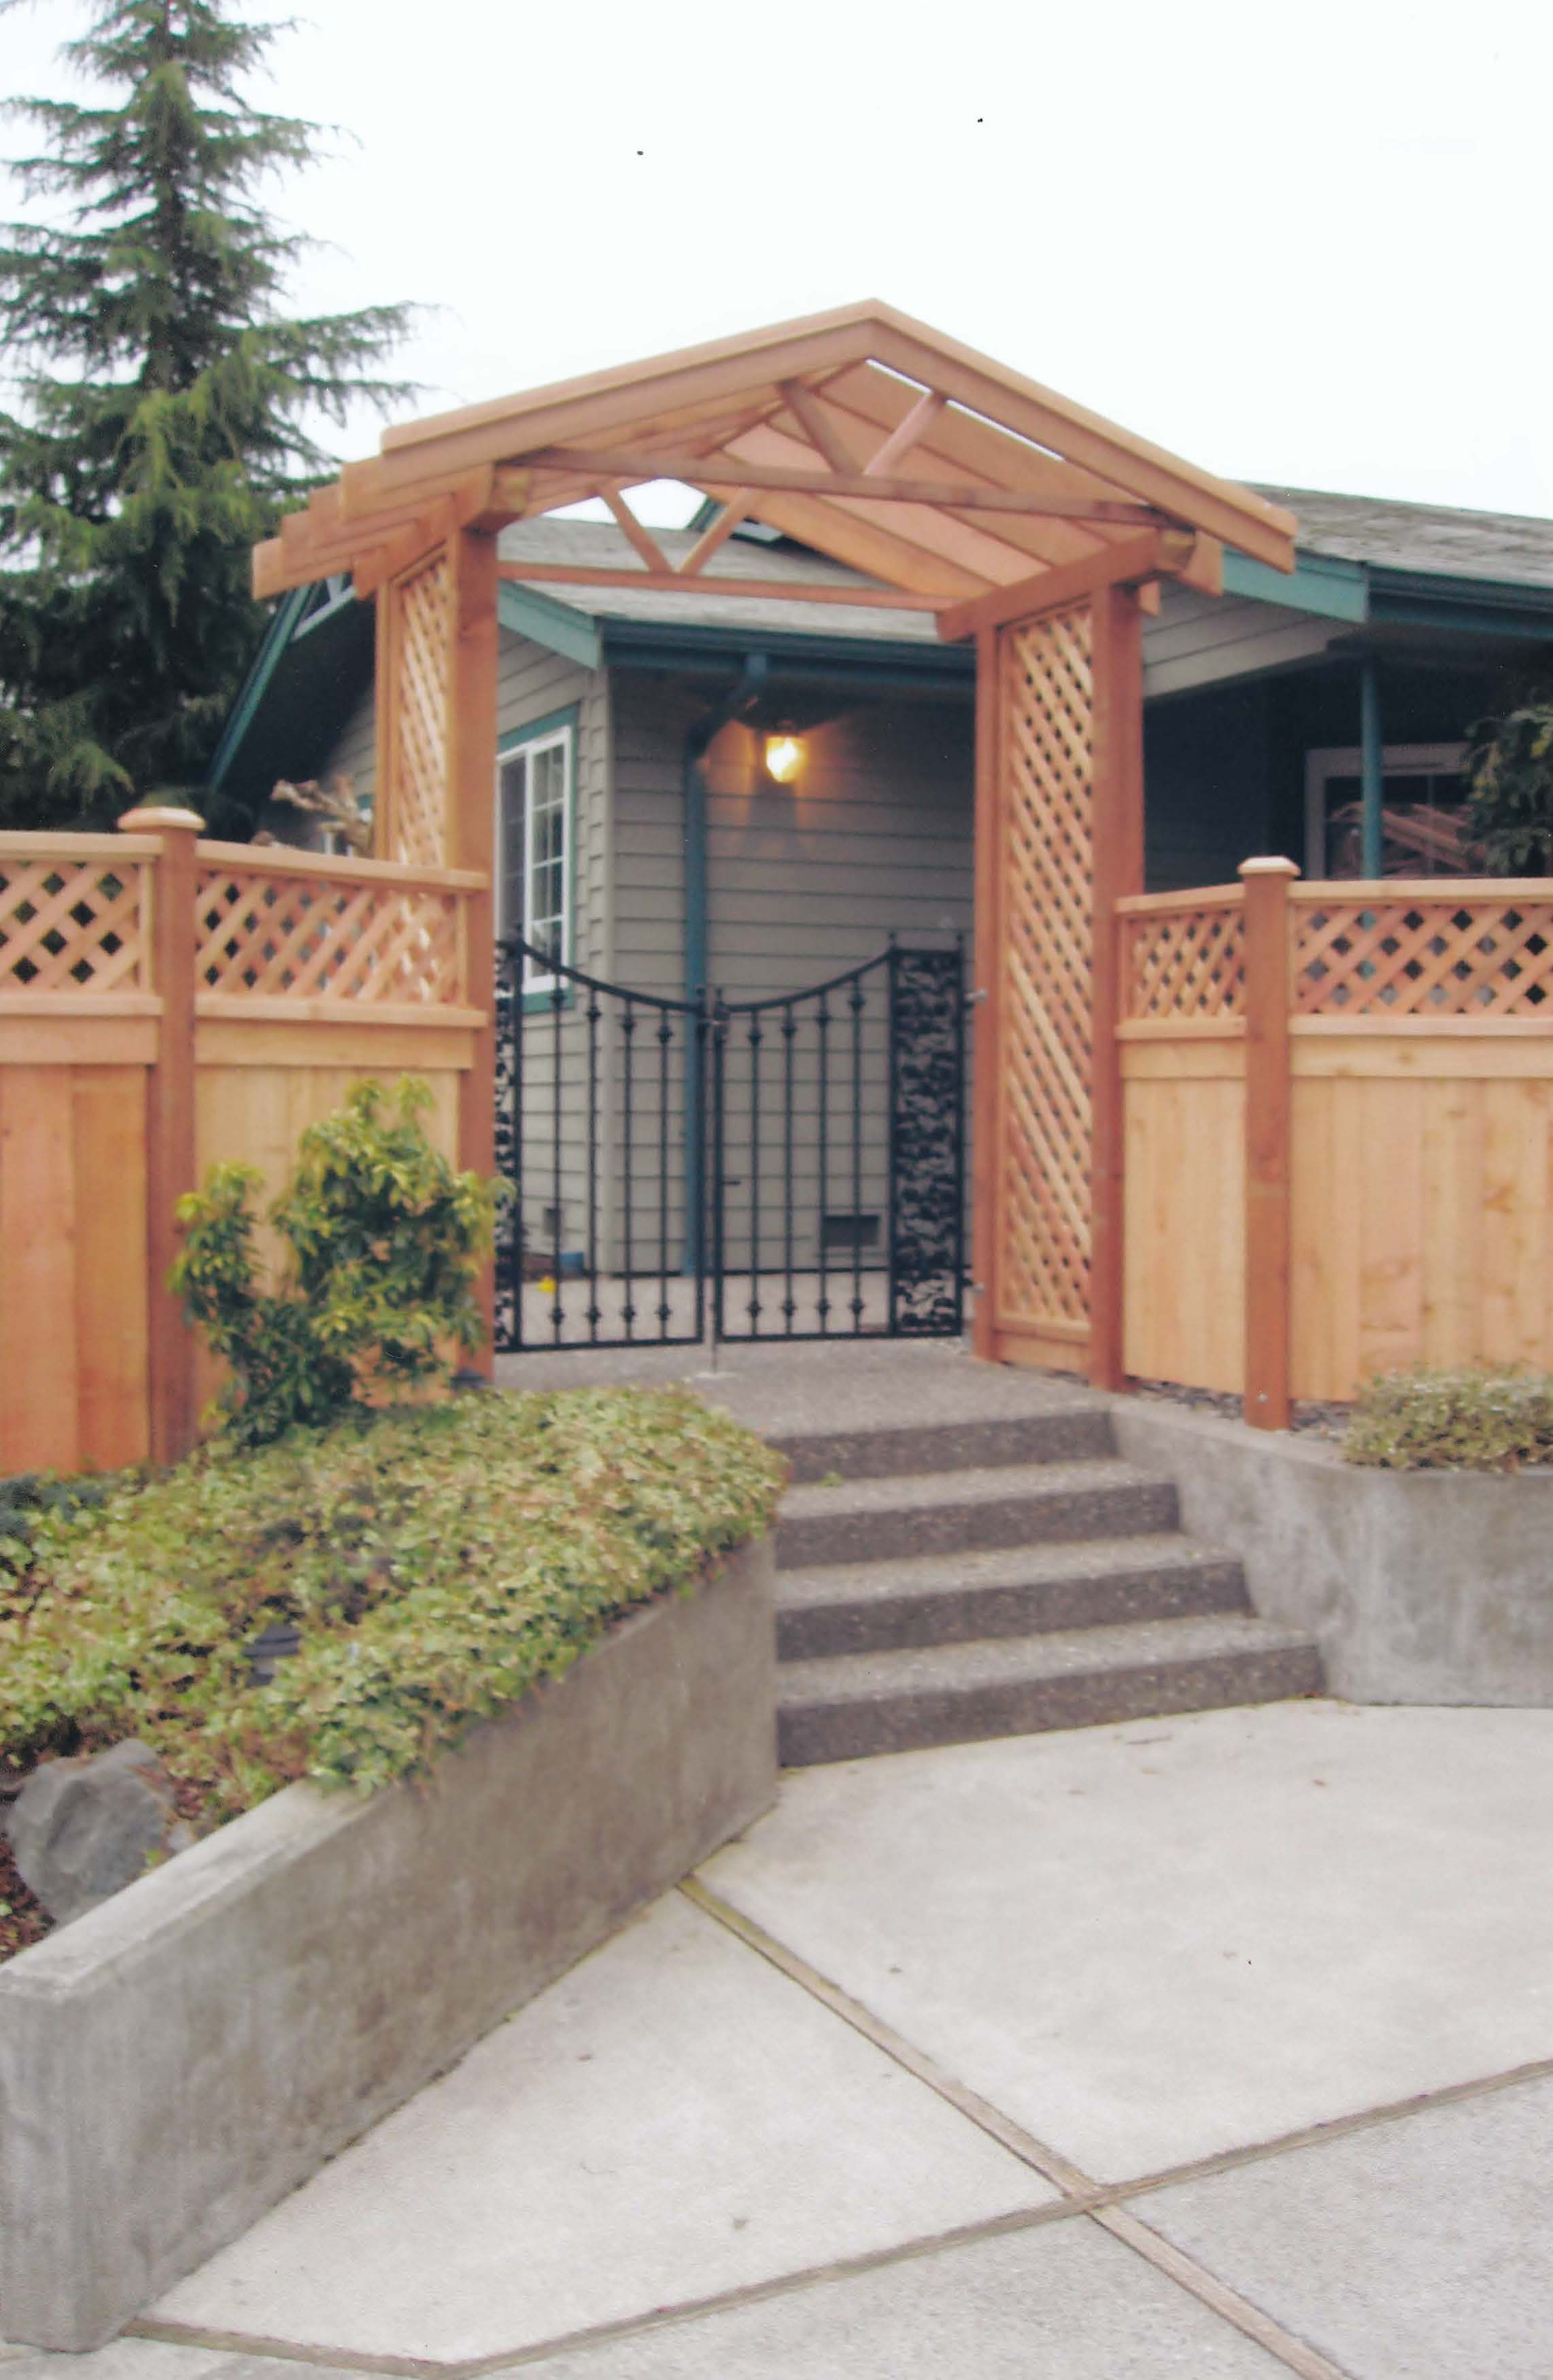 Design For Gate And Fence Gate repair services in seattle wa cwf design arbor oi gate fence workwithnaturefo